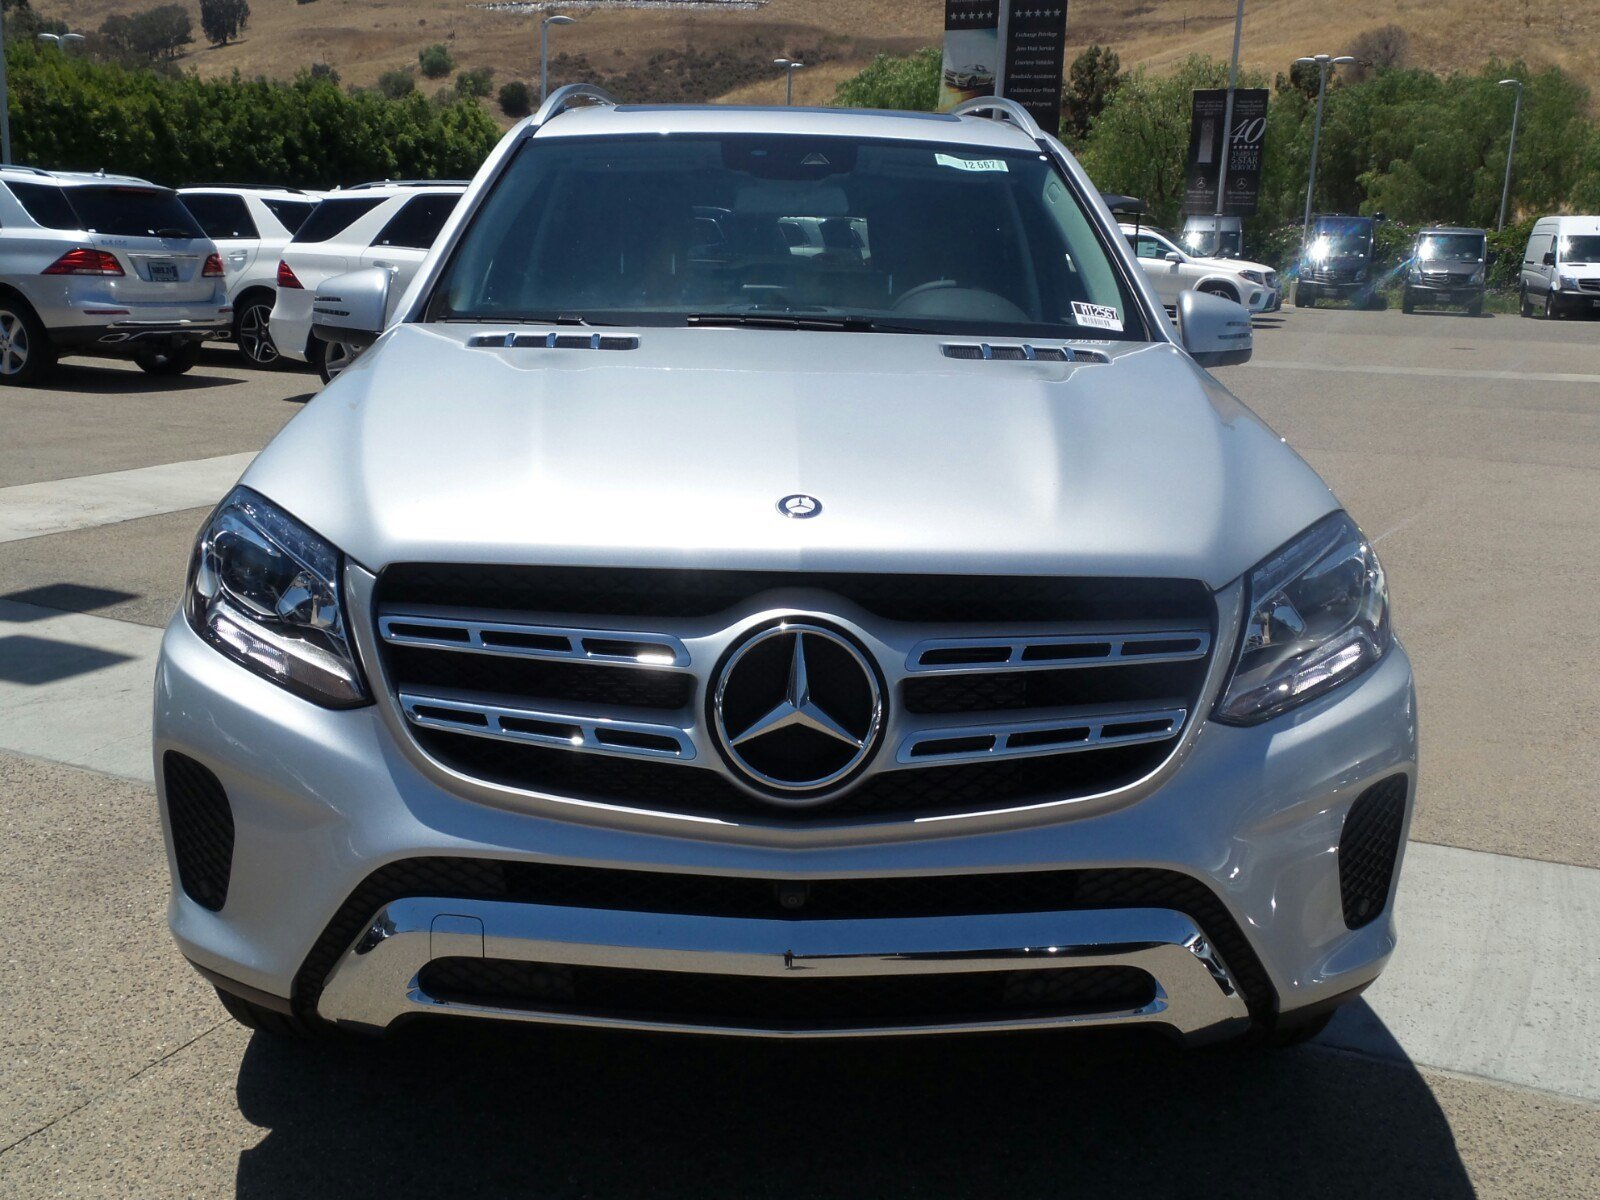 gls450 suv in laguna niguel m12567 mercedes benz of laguna niguel. Cars Review. Best American Auto & Cars Review